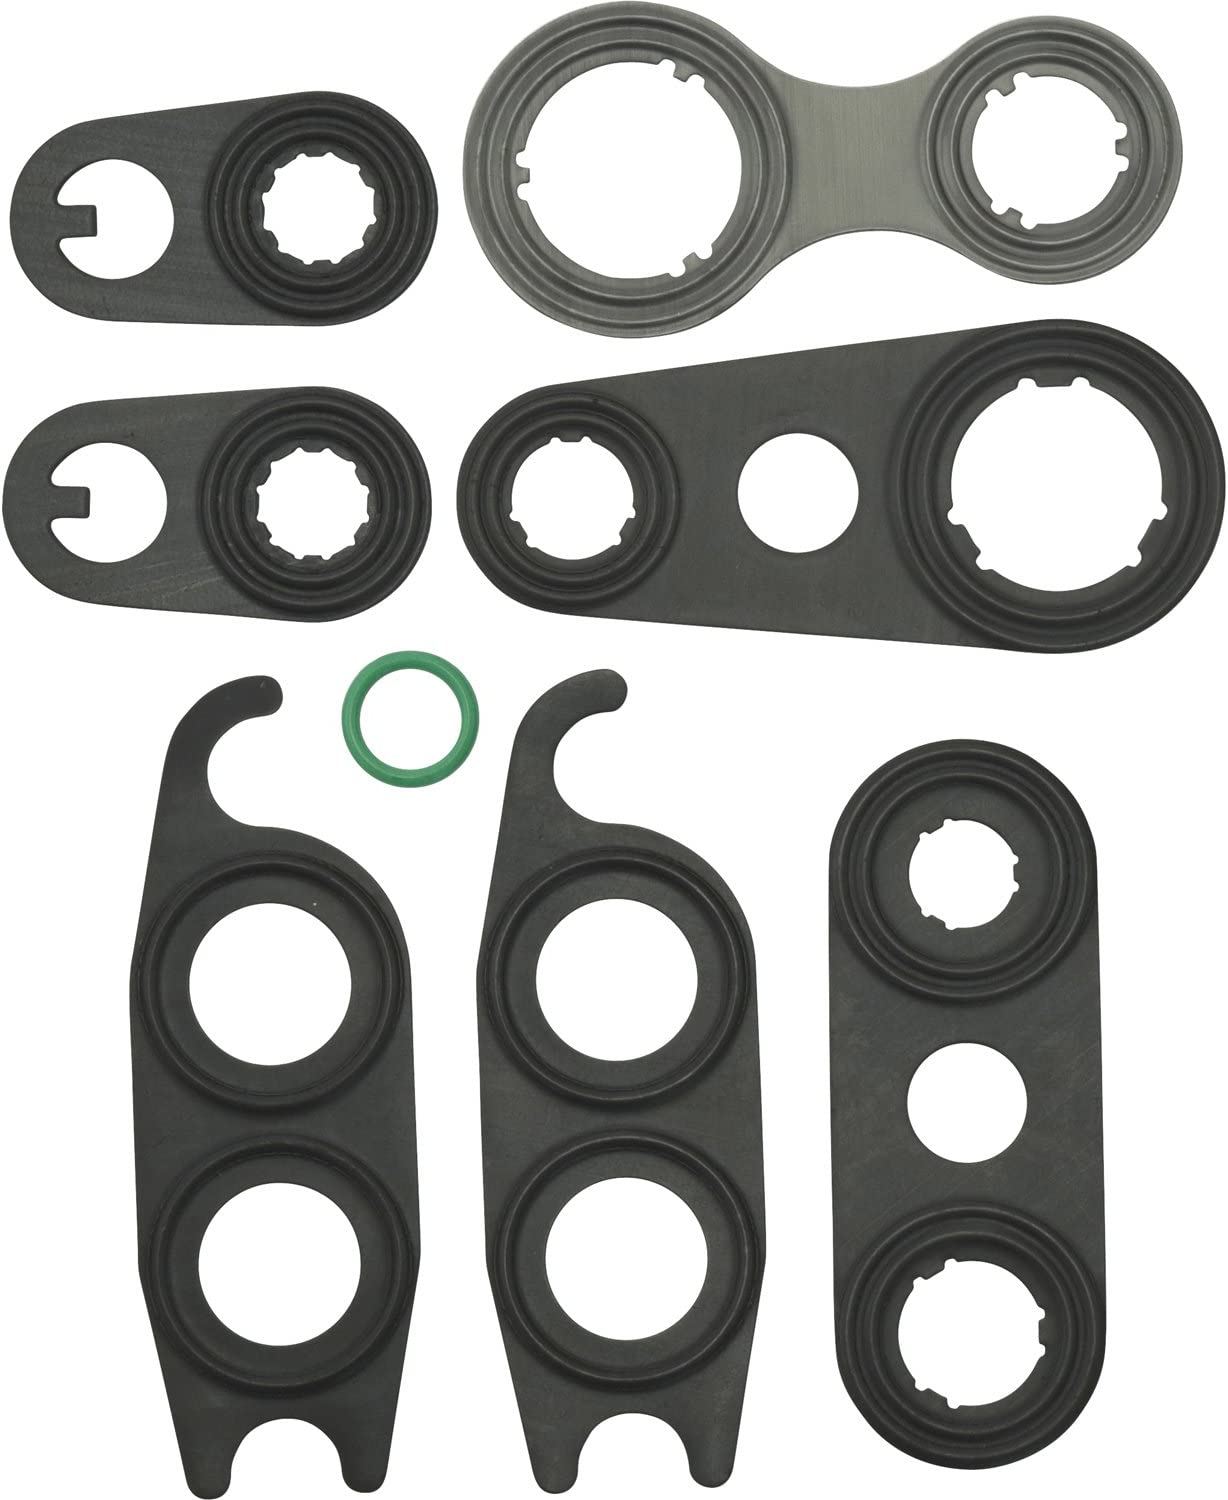 Universal Air Conditioner RS 2500 A/C System Seal Kit